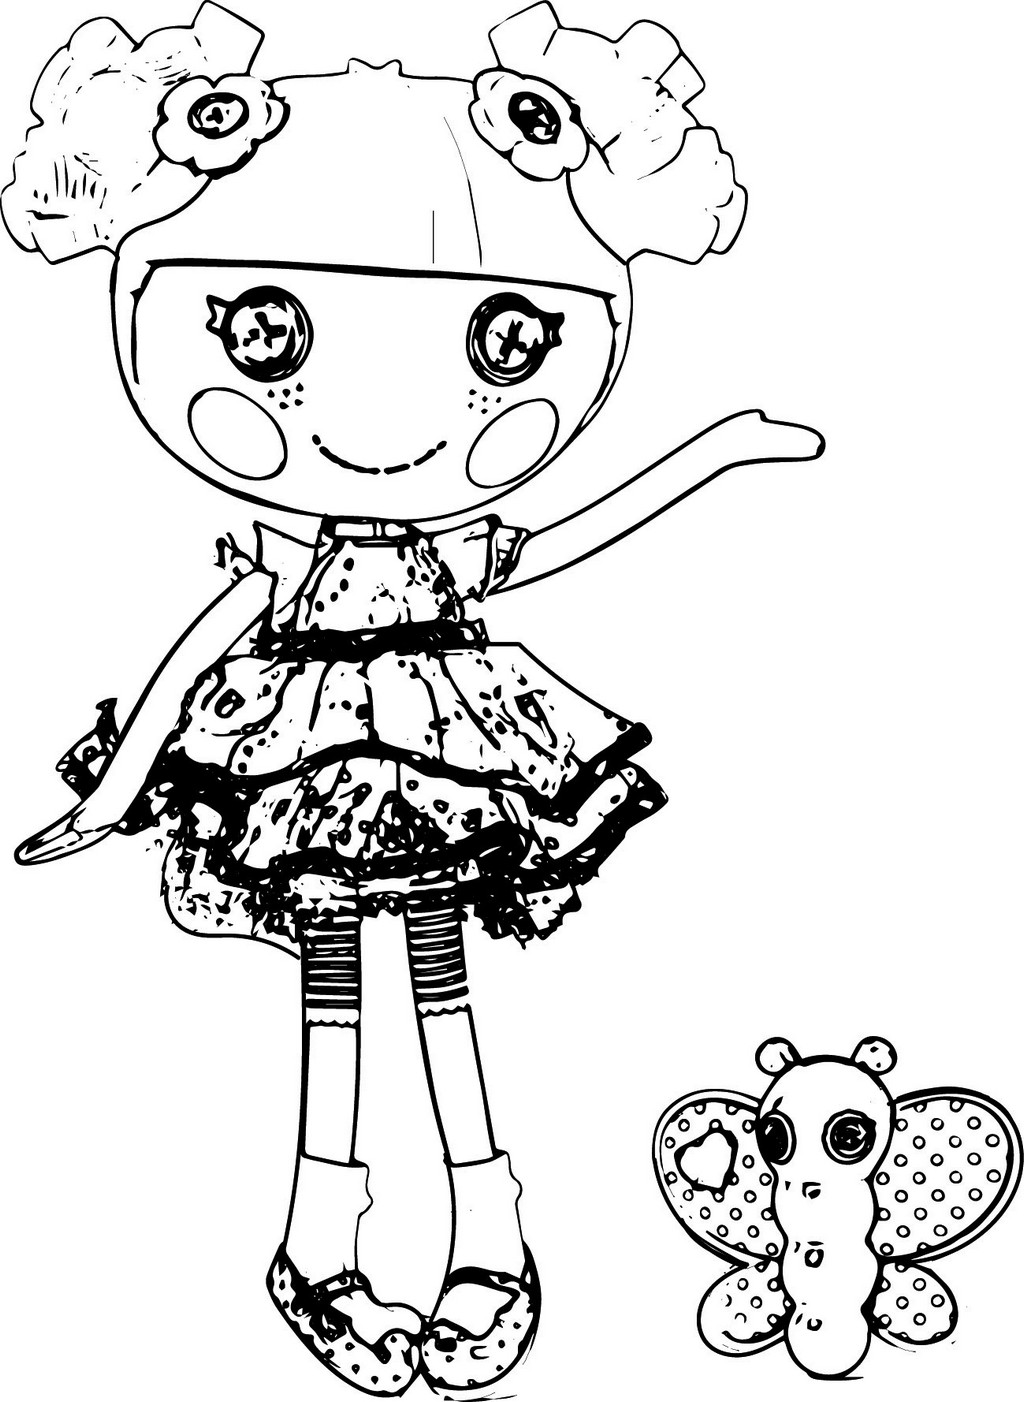 Blossom Flowerpot Lalaloopsy coloring page dolls